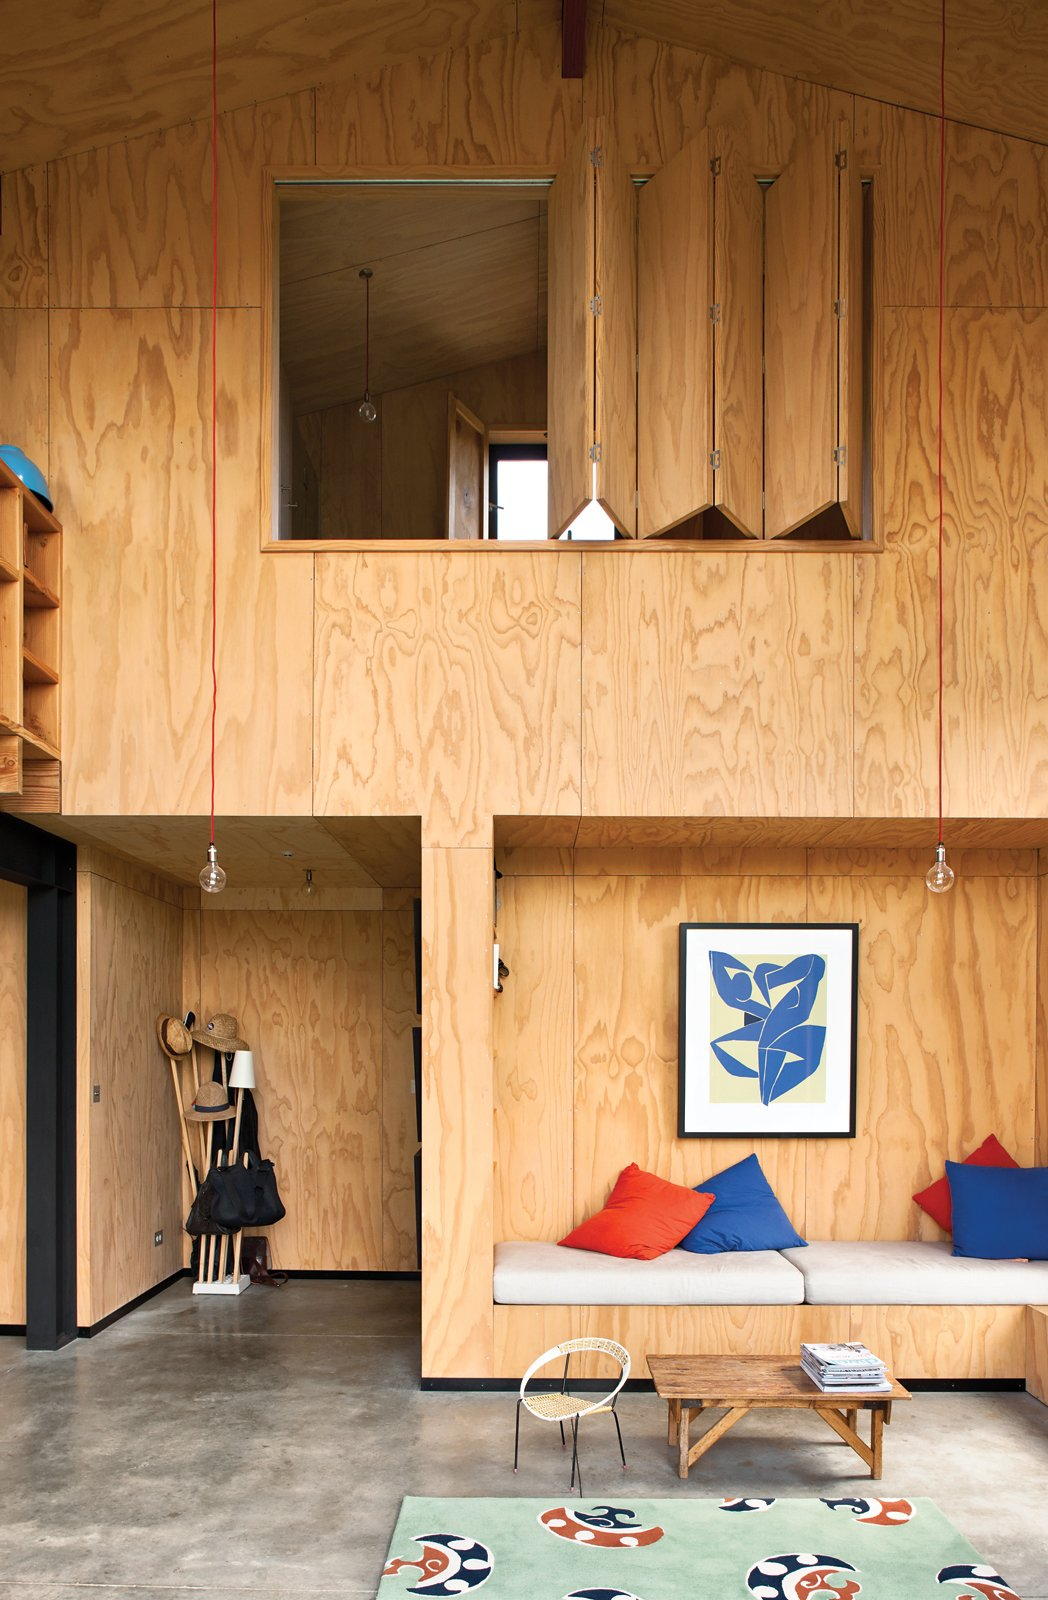 Instead of relying on plasterboard that would be too costly, architect Davor Popadich chose to use plywood to line his New Zealand home's interior. In addition to being cost effective, the plywood highlights the builders' craftsmanship. We think he made the right decision. See more on the Popadich residence here.